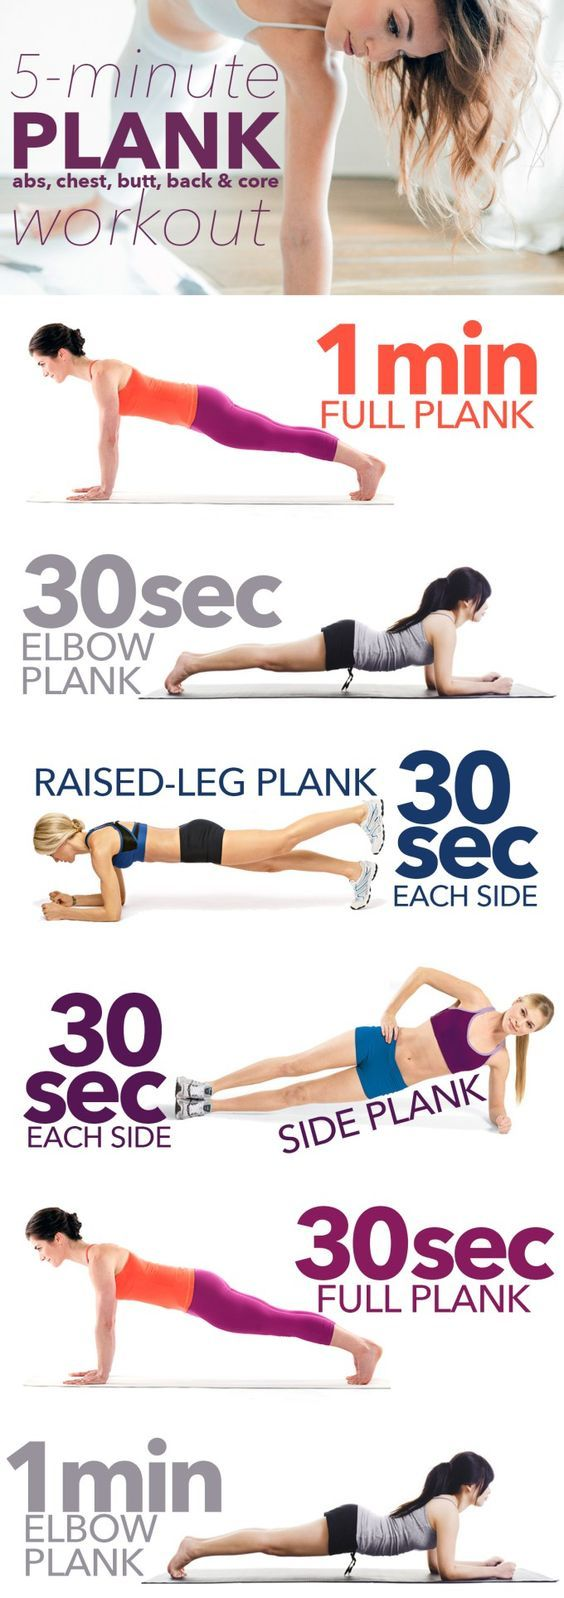 5 Minute Plank, Abs, Chest, Butt, Back And Core Workout Infographic (Five More Minutes)